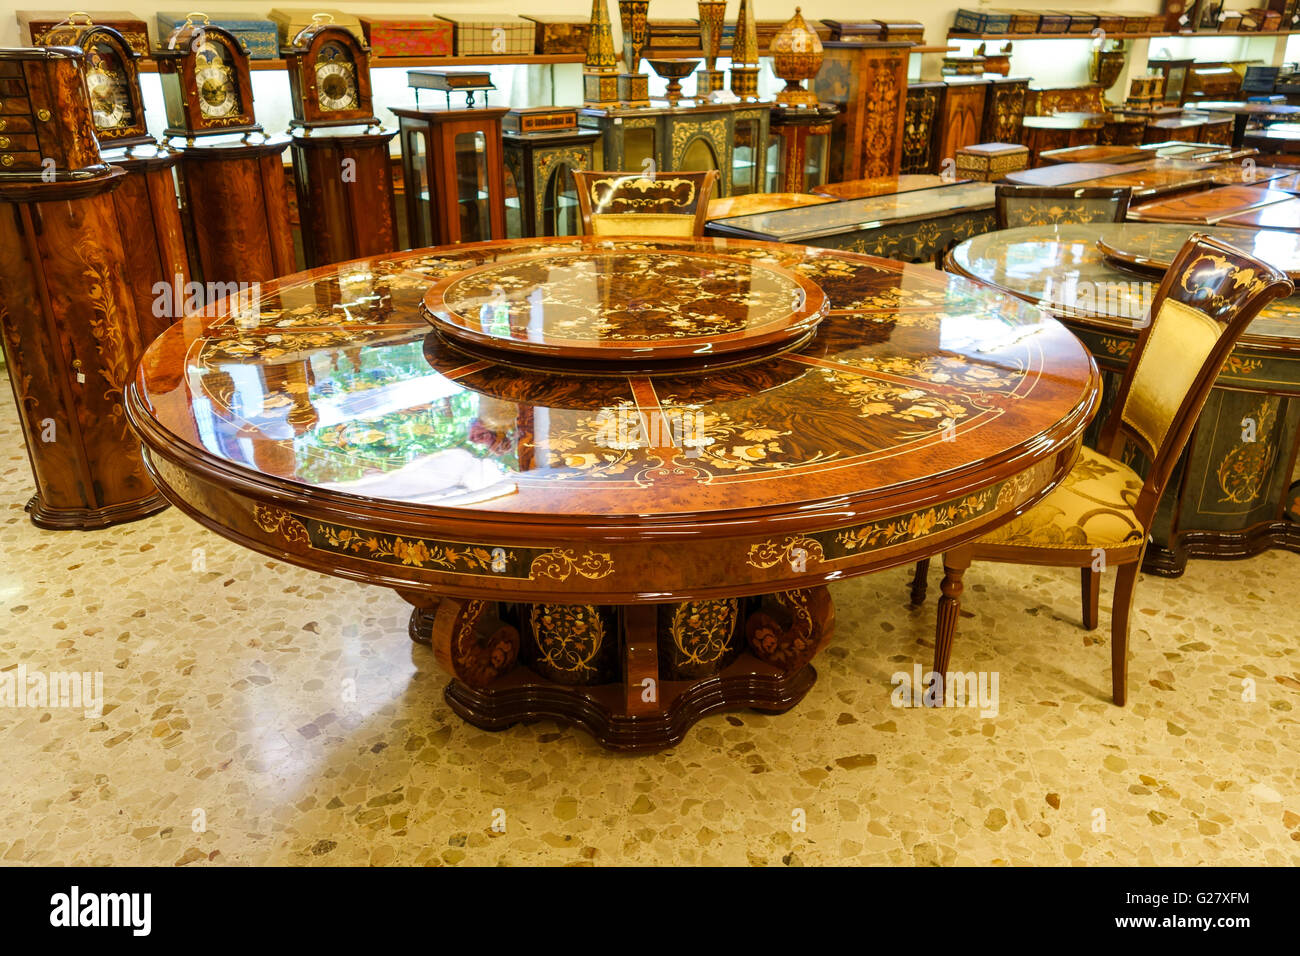 Ornate wooden inlaid furniture tables clocks etc for sale in a shop in  Sorrento Italy Europe. Inlaid Wood Table Stock Photos   Inlaid Wood Table Stock Images